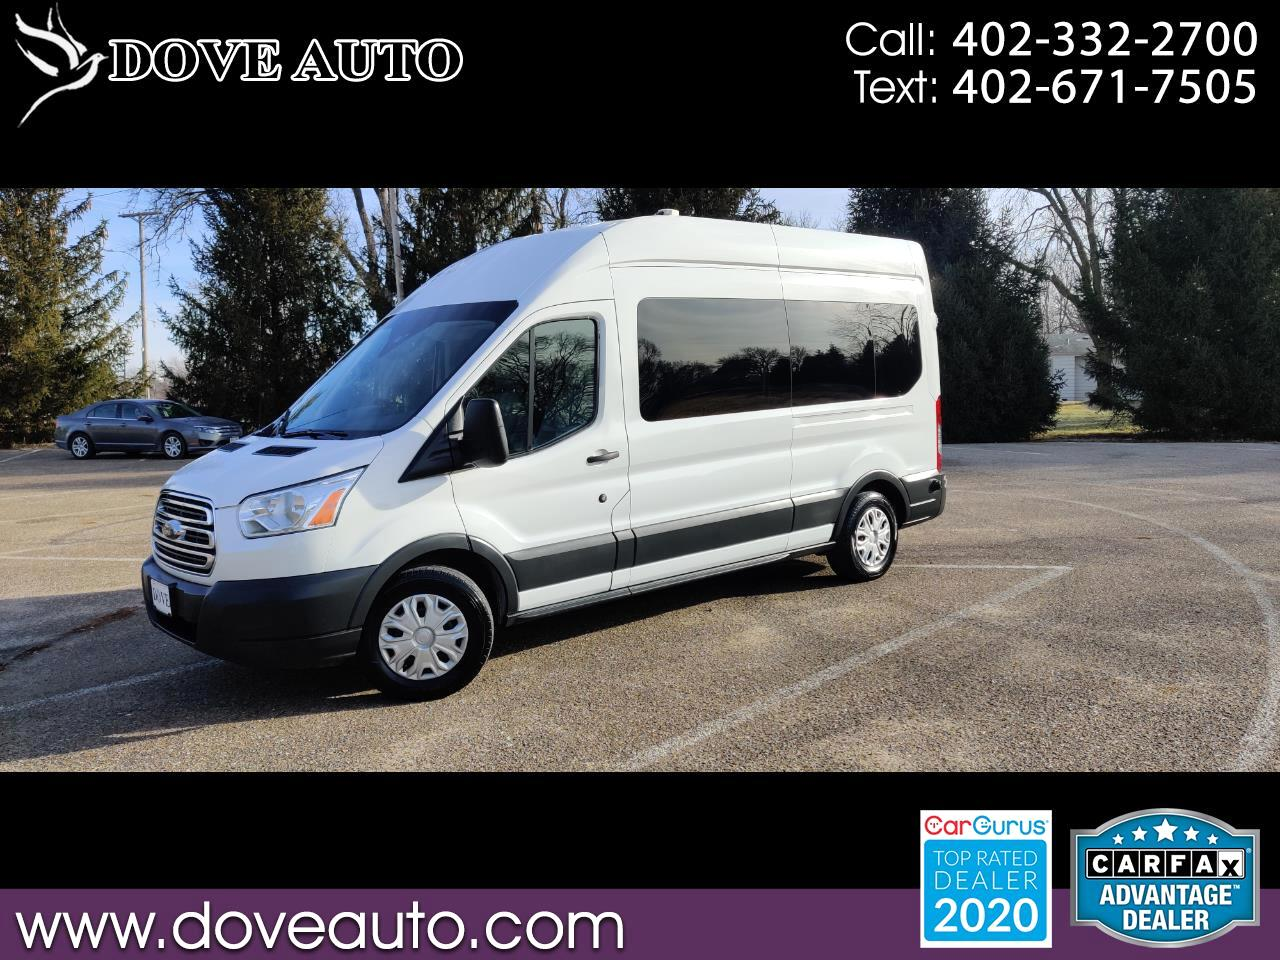 Ford Transit 350 Wagon High Roof XL w/Sliding Pass. 148-in. WB 2016